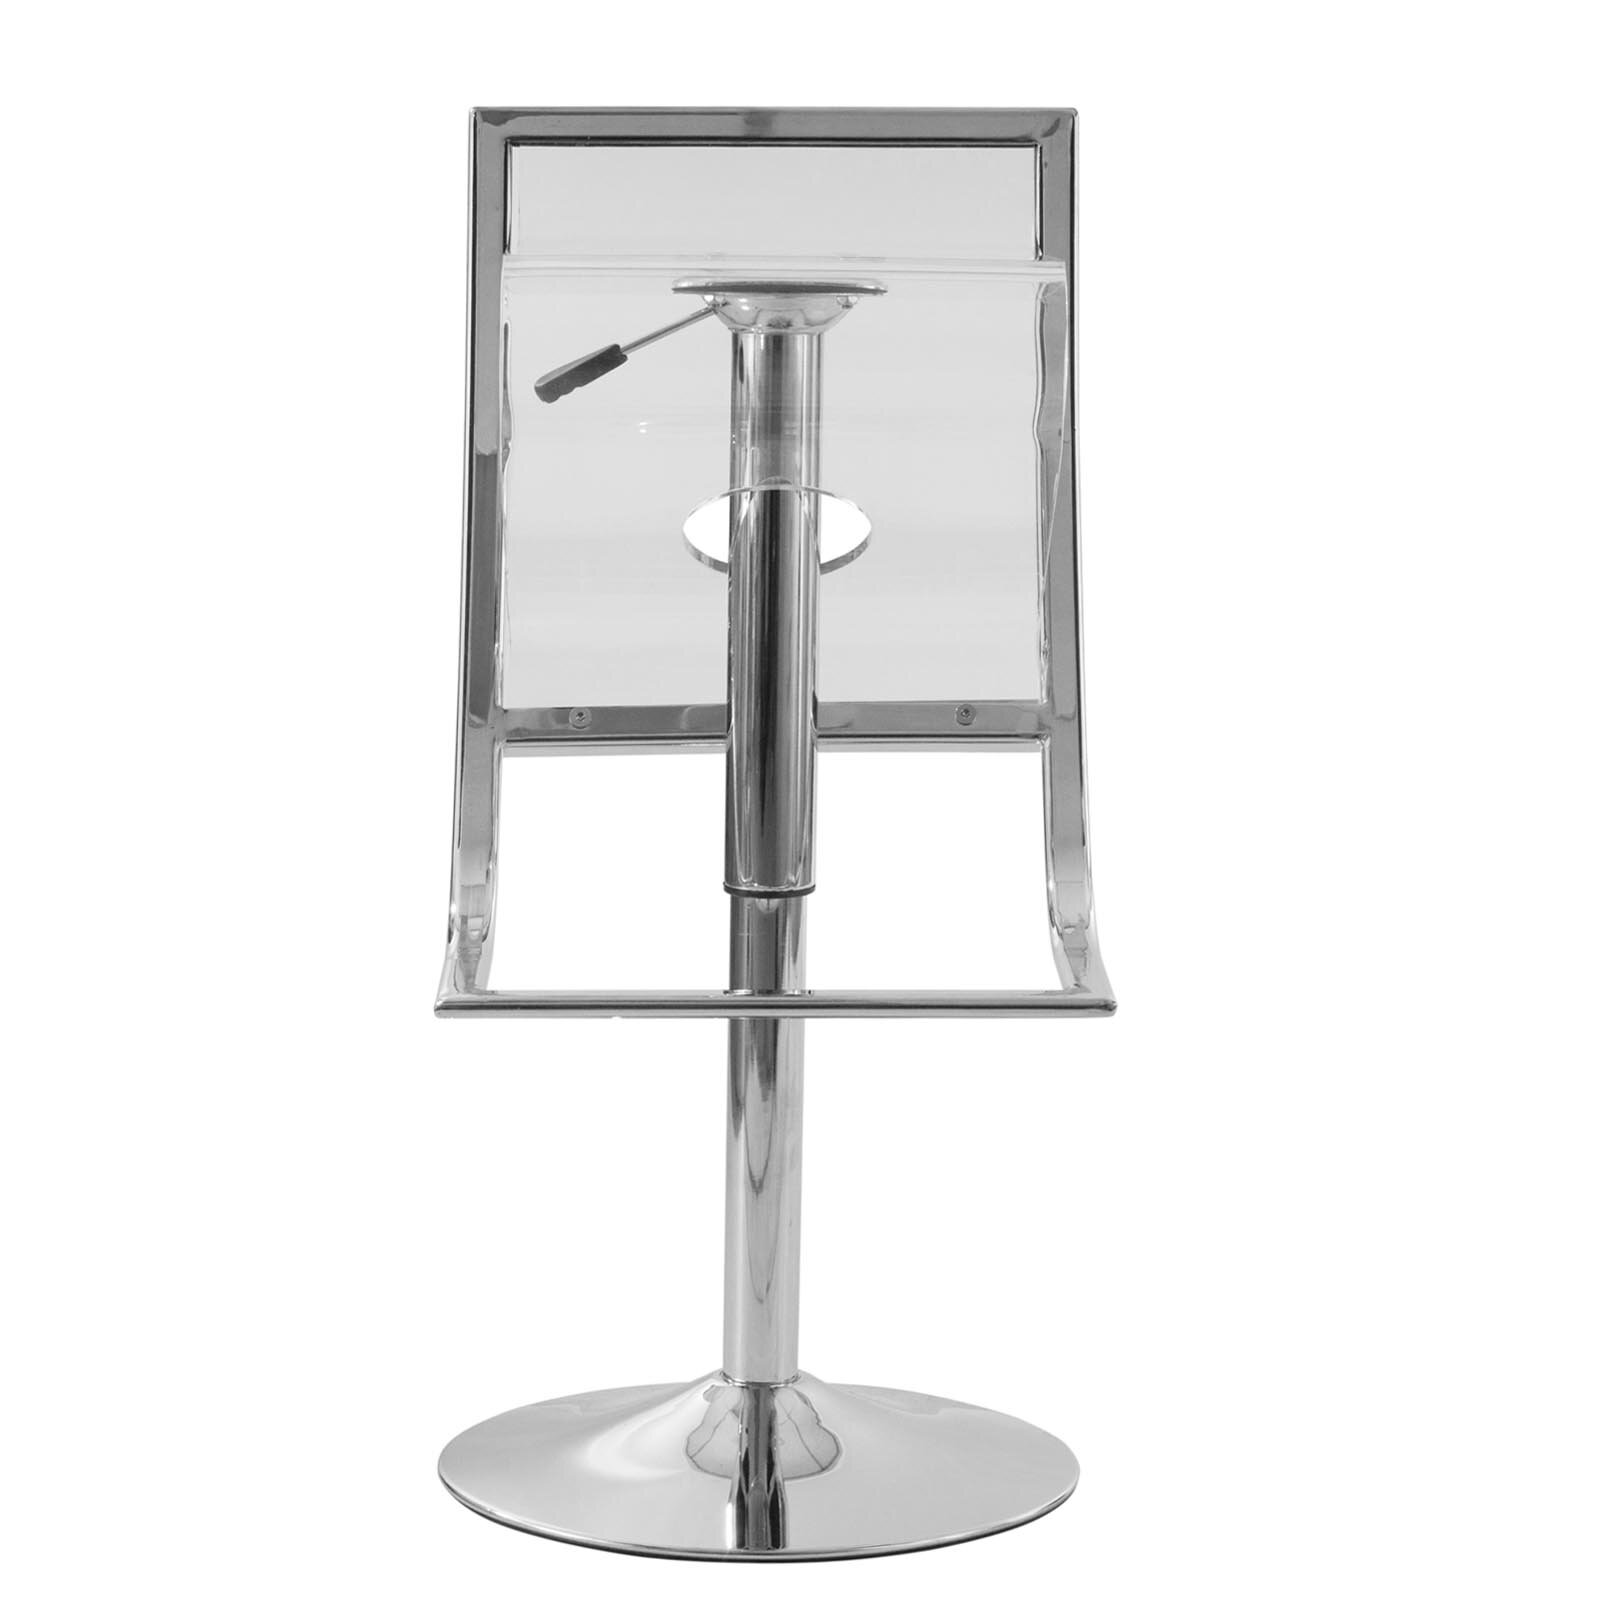 Leisuremod Napoli Adjustable Height Swivel Bar Stool